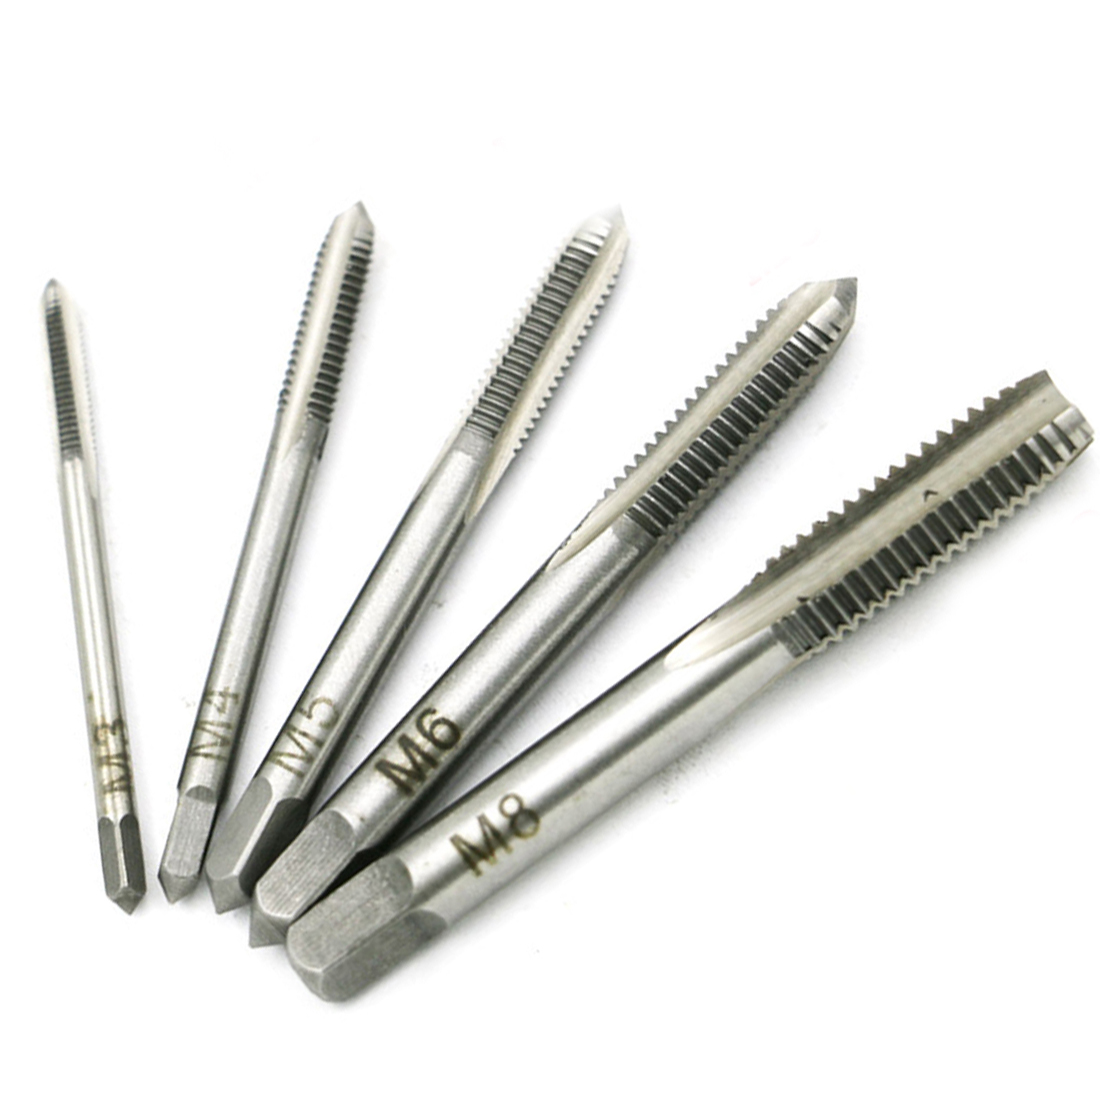 5PCS/Set HSS M3 M4 M5 M6 M8 Machine Spiral Point Straight Fluted Screw Thread Metric Plug Hand Tap Drill Set Hand Tools lange 6pcs set m3 m4 m5 m6 m8 m10 hand tools hand tap drill hex shank hss screw spiral point thread metric plug drill bits a6